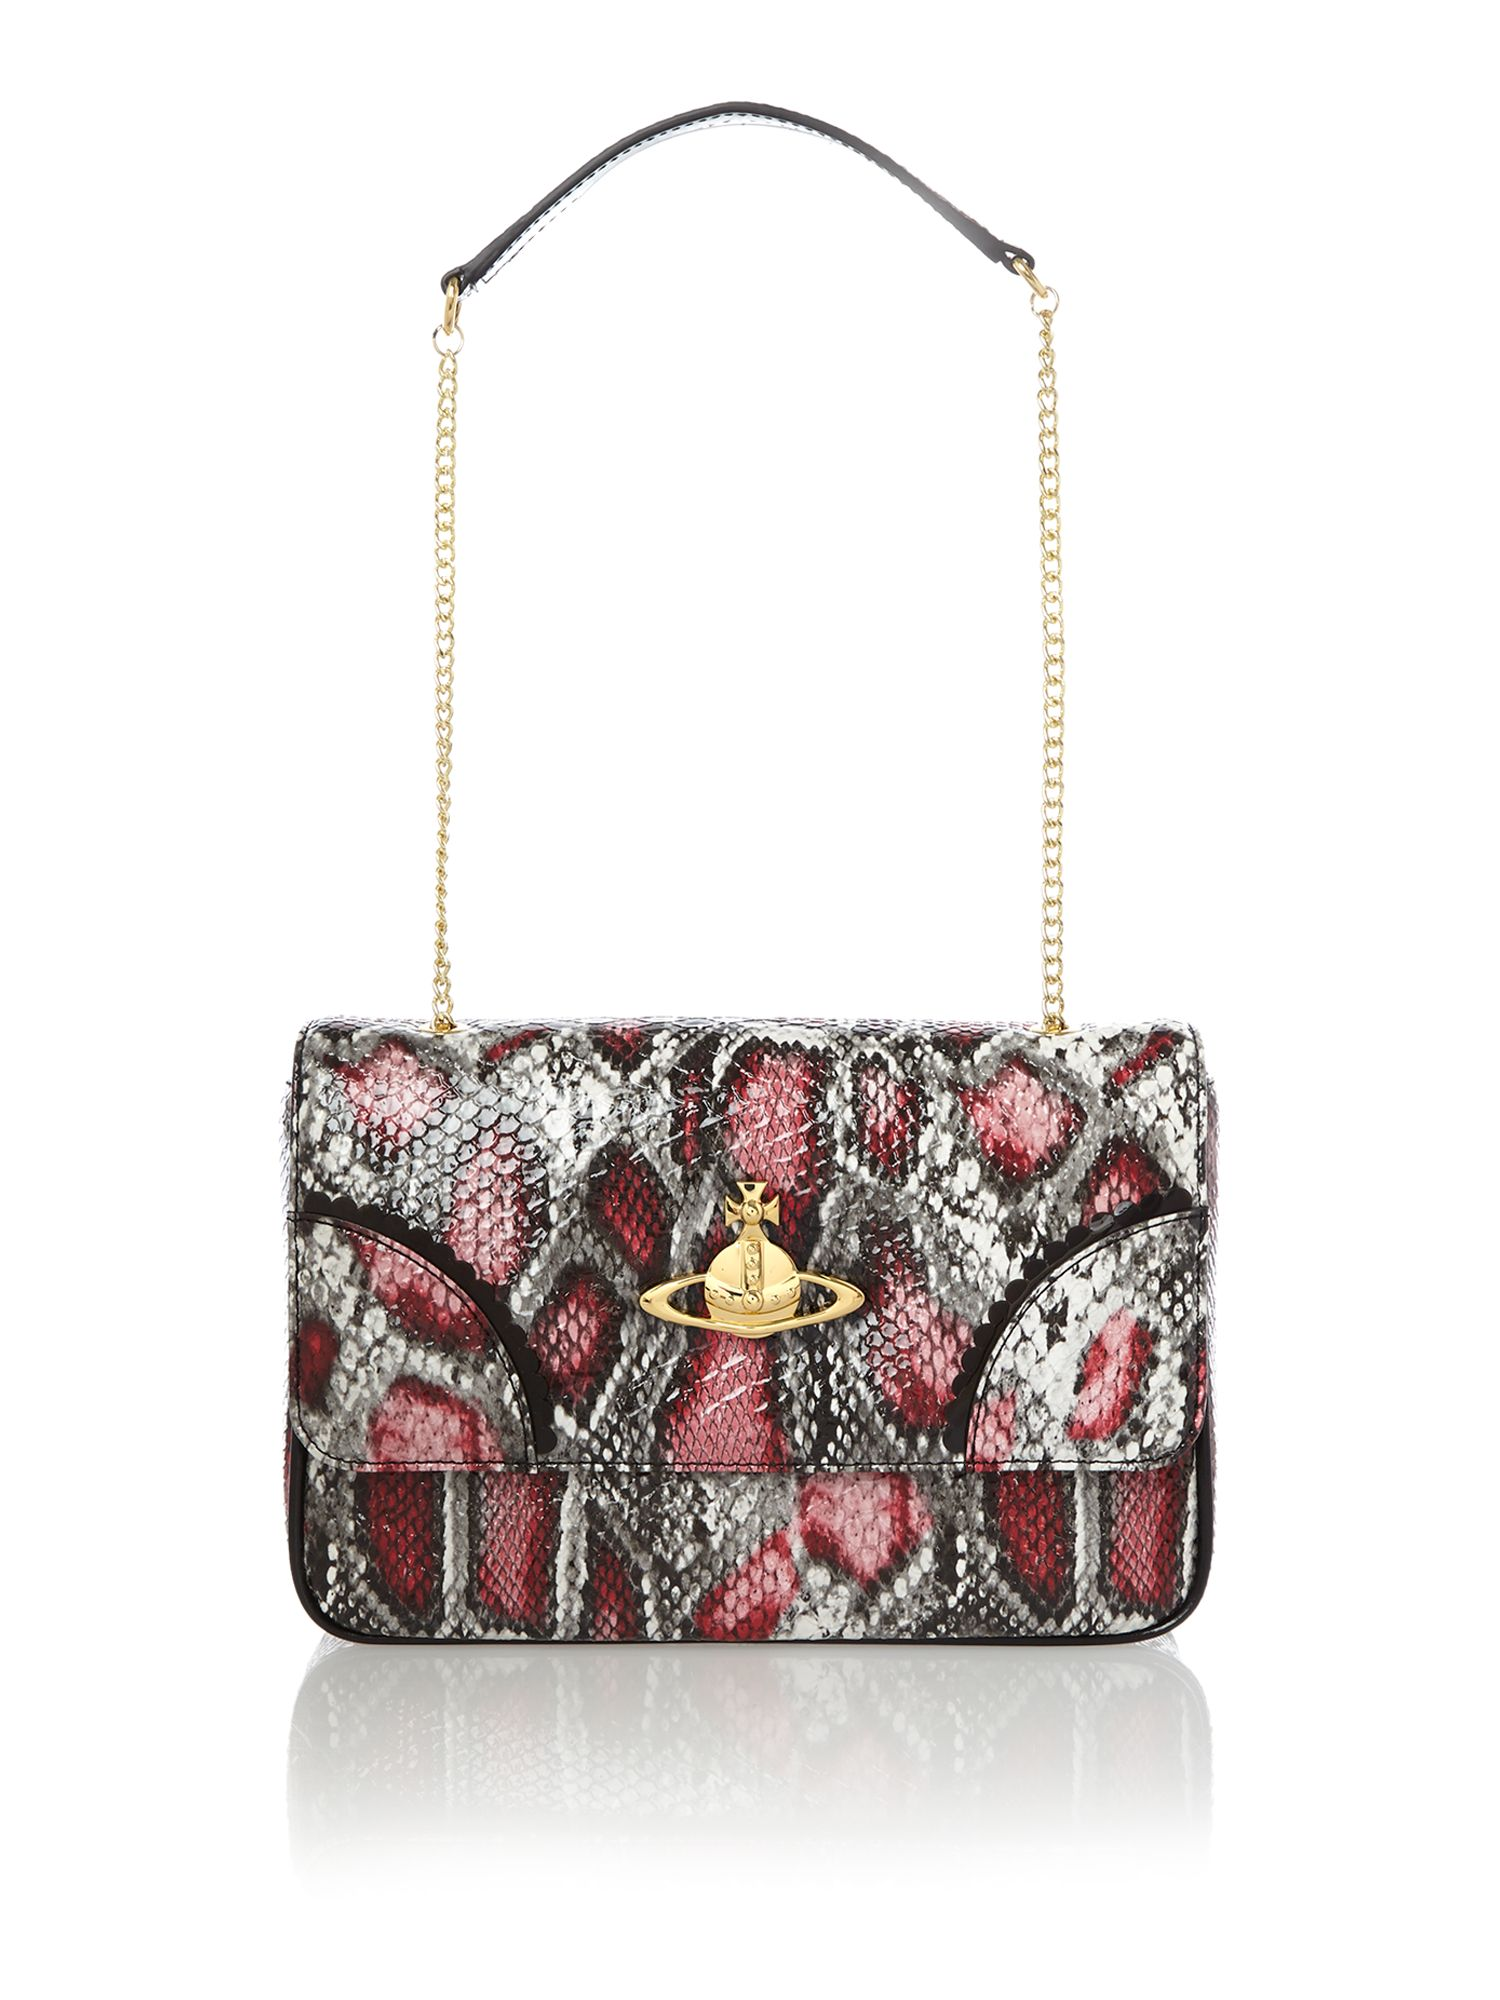 Frilly Snake multi coloured shoulder bag